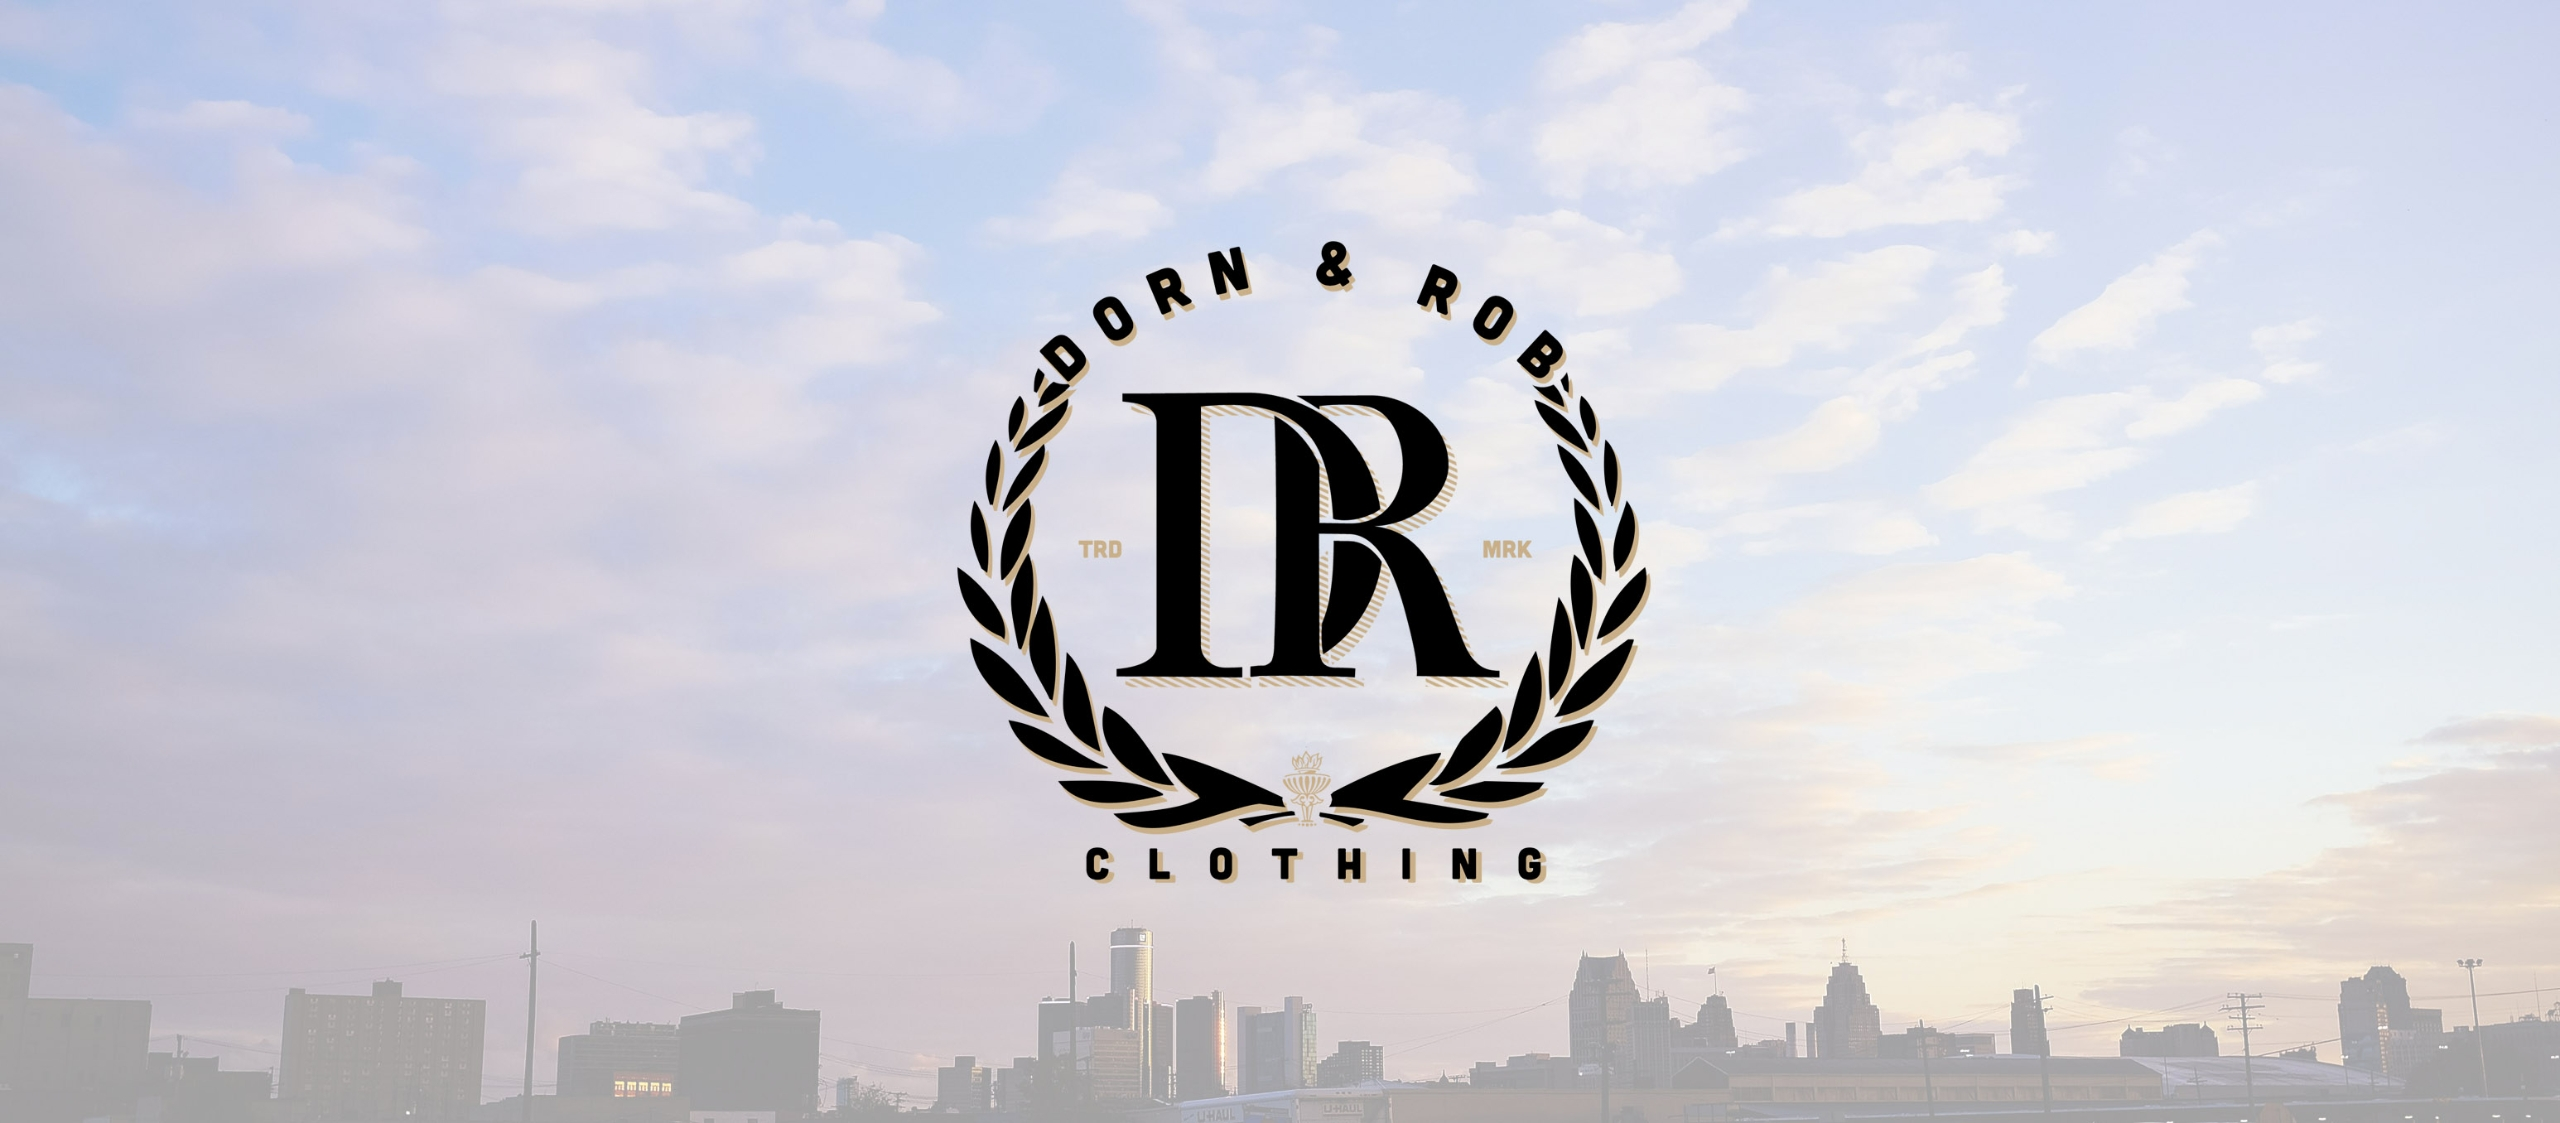 Dorn & Rob Clothing  (@dornandrob) Cover Image